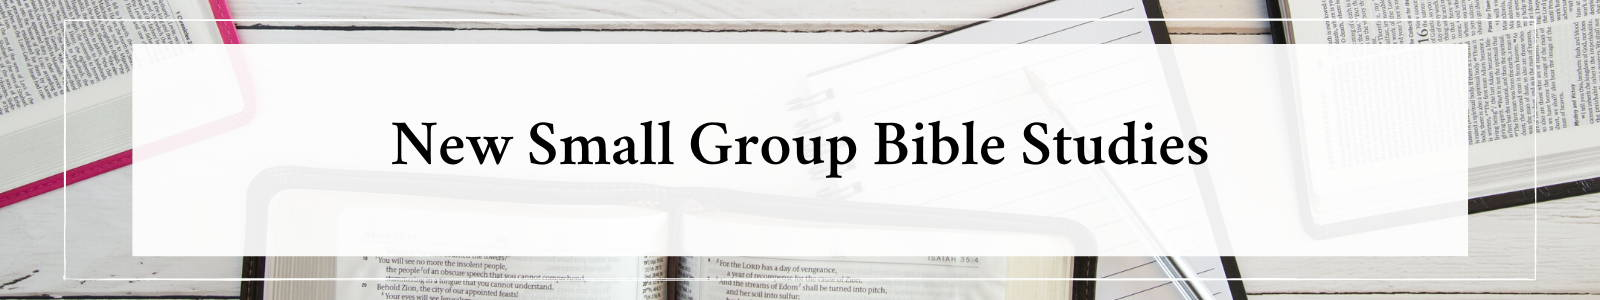 New Small Group Bible Studies